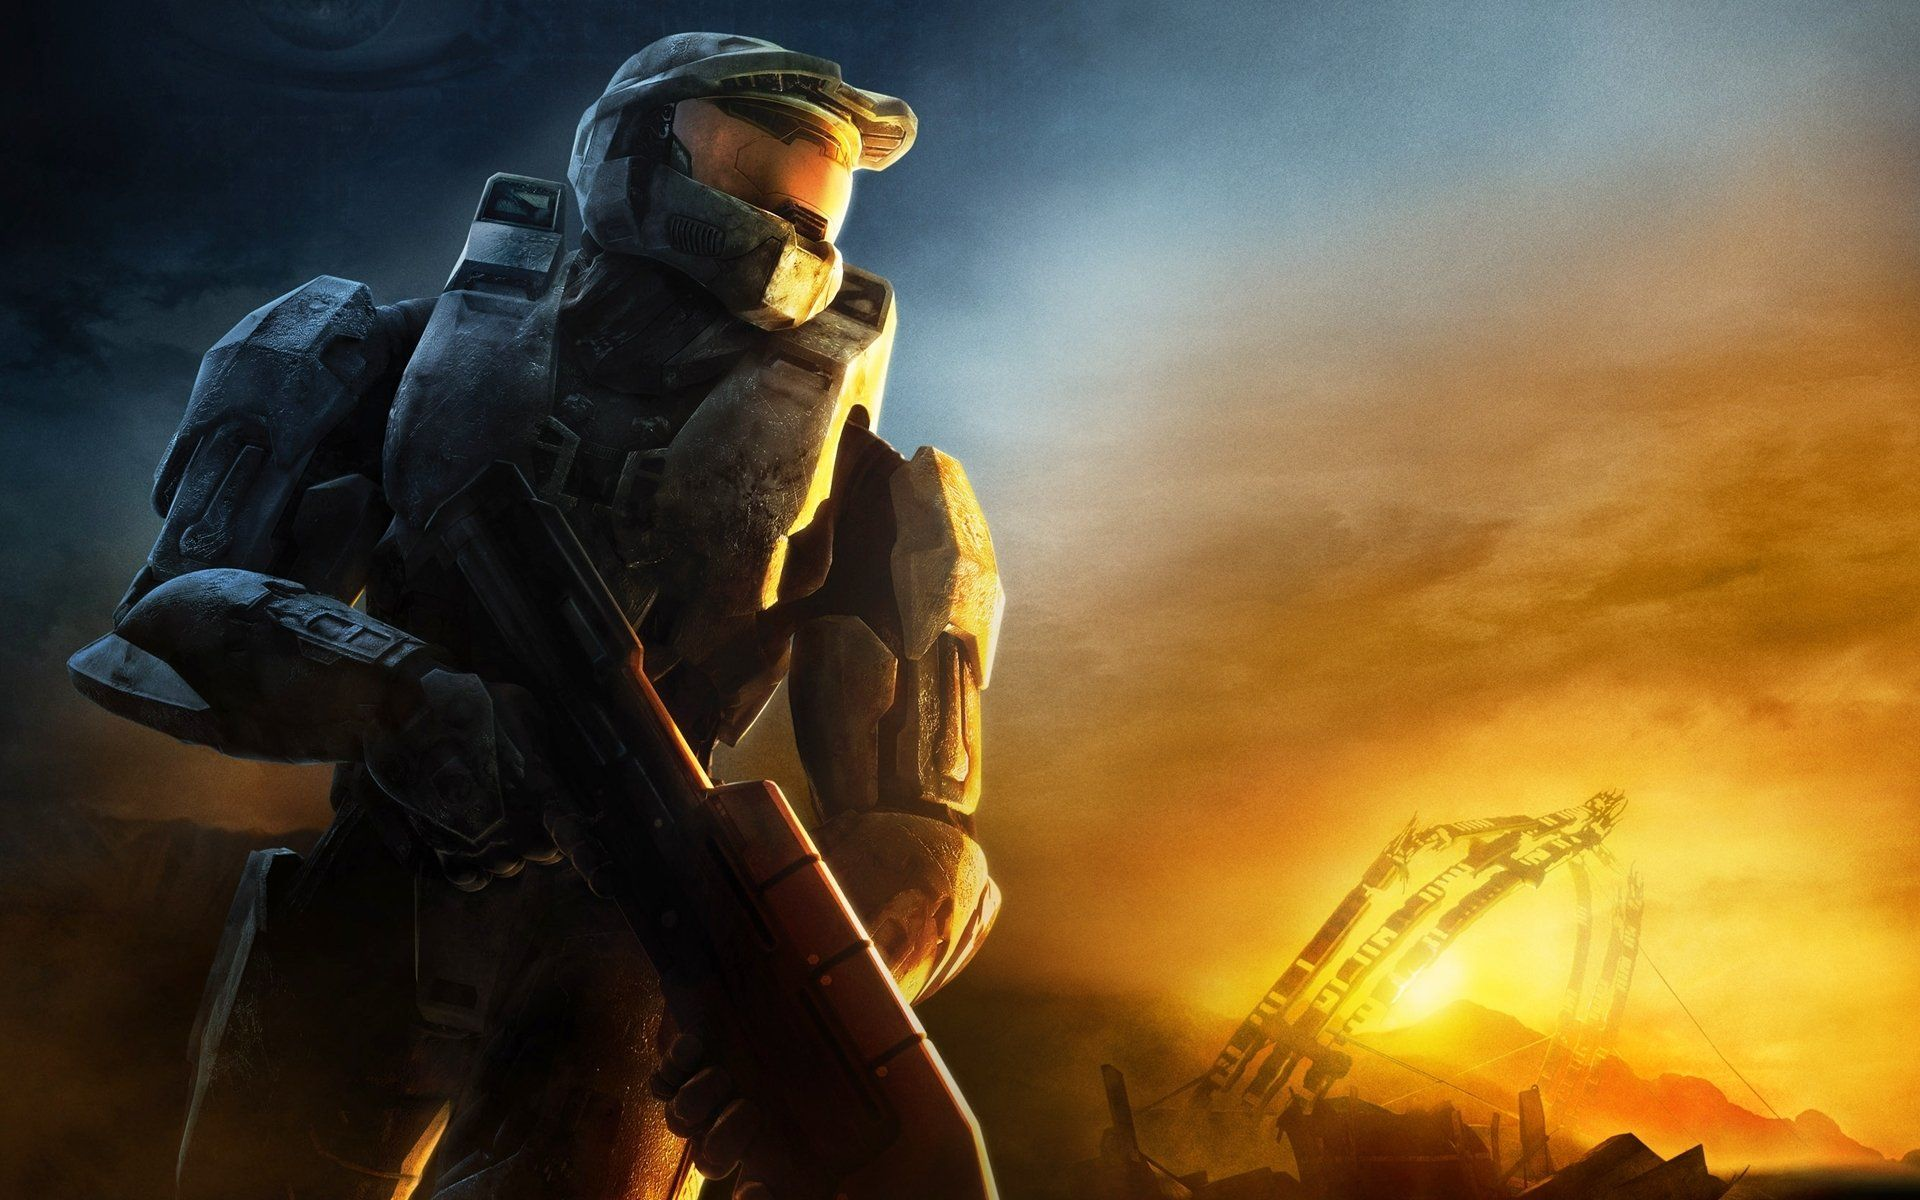 Halo Hd Wallpapers Backgrounds Wallpaper Halo Series Halo